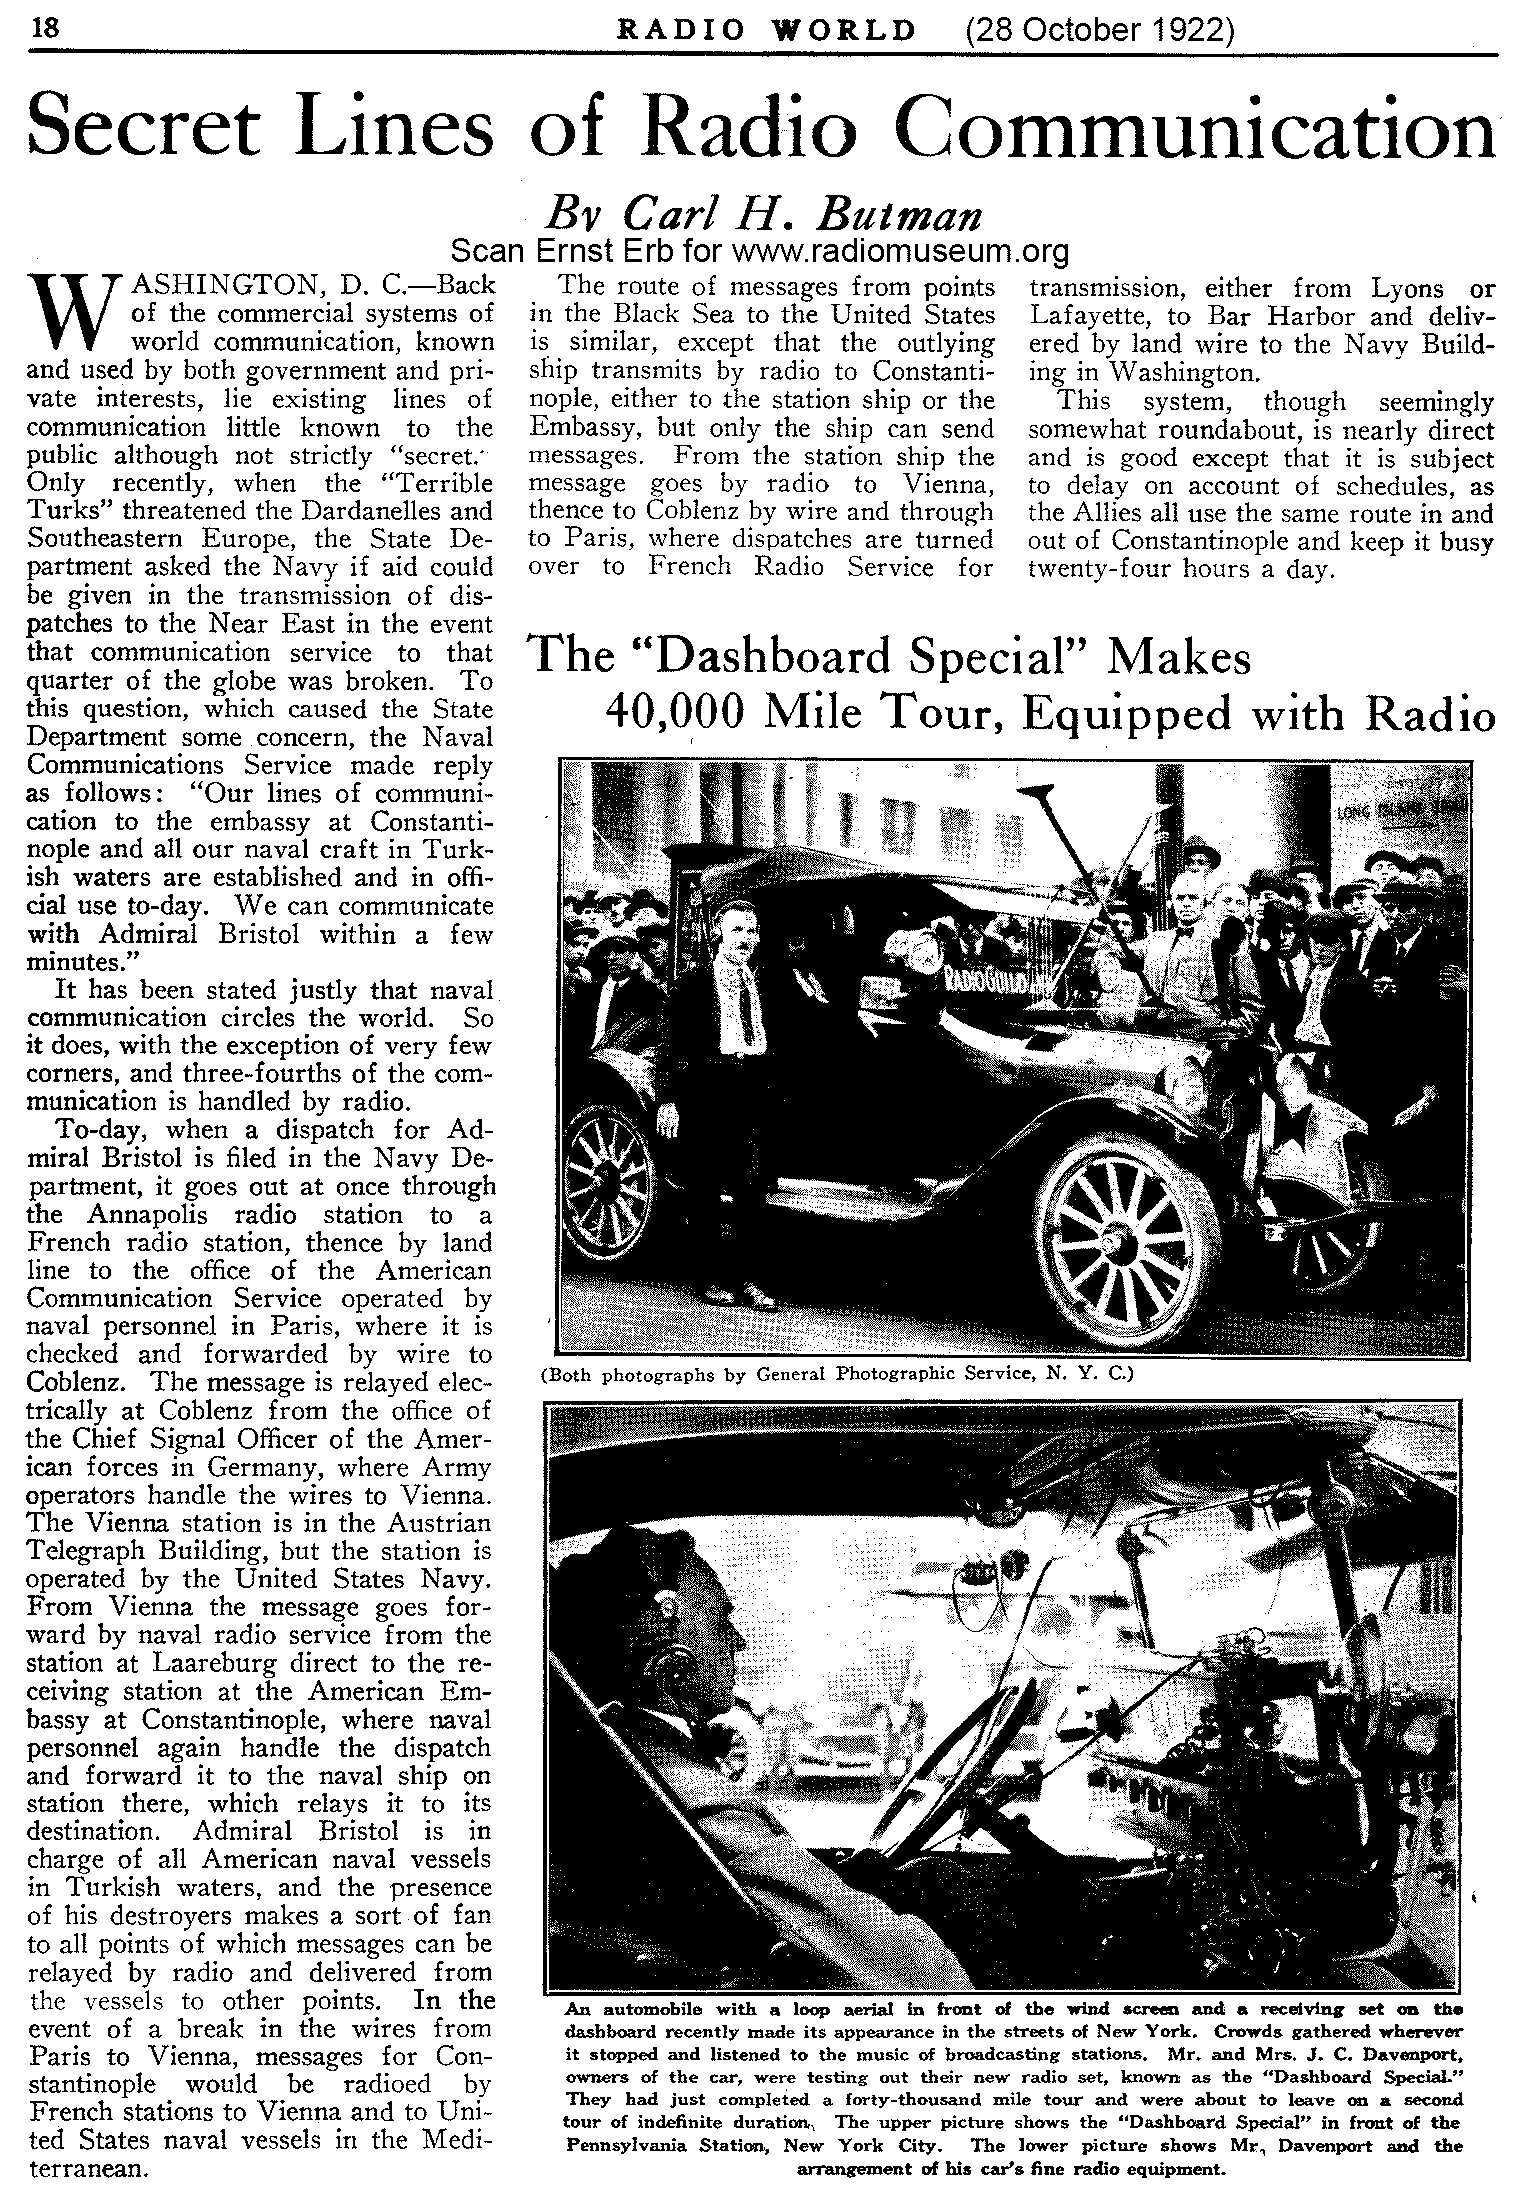 First Car radios-history and development of early Car Radios